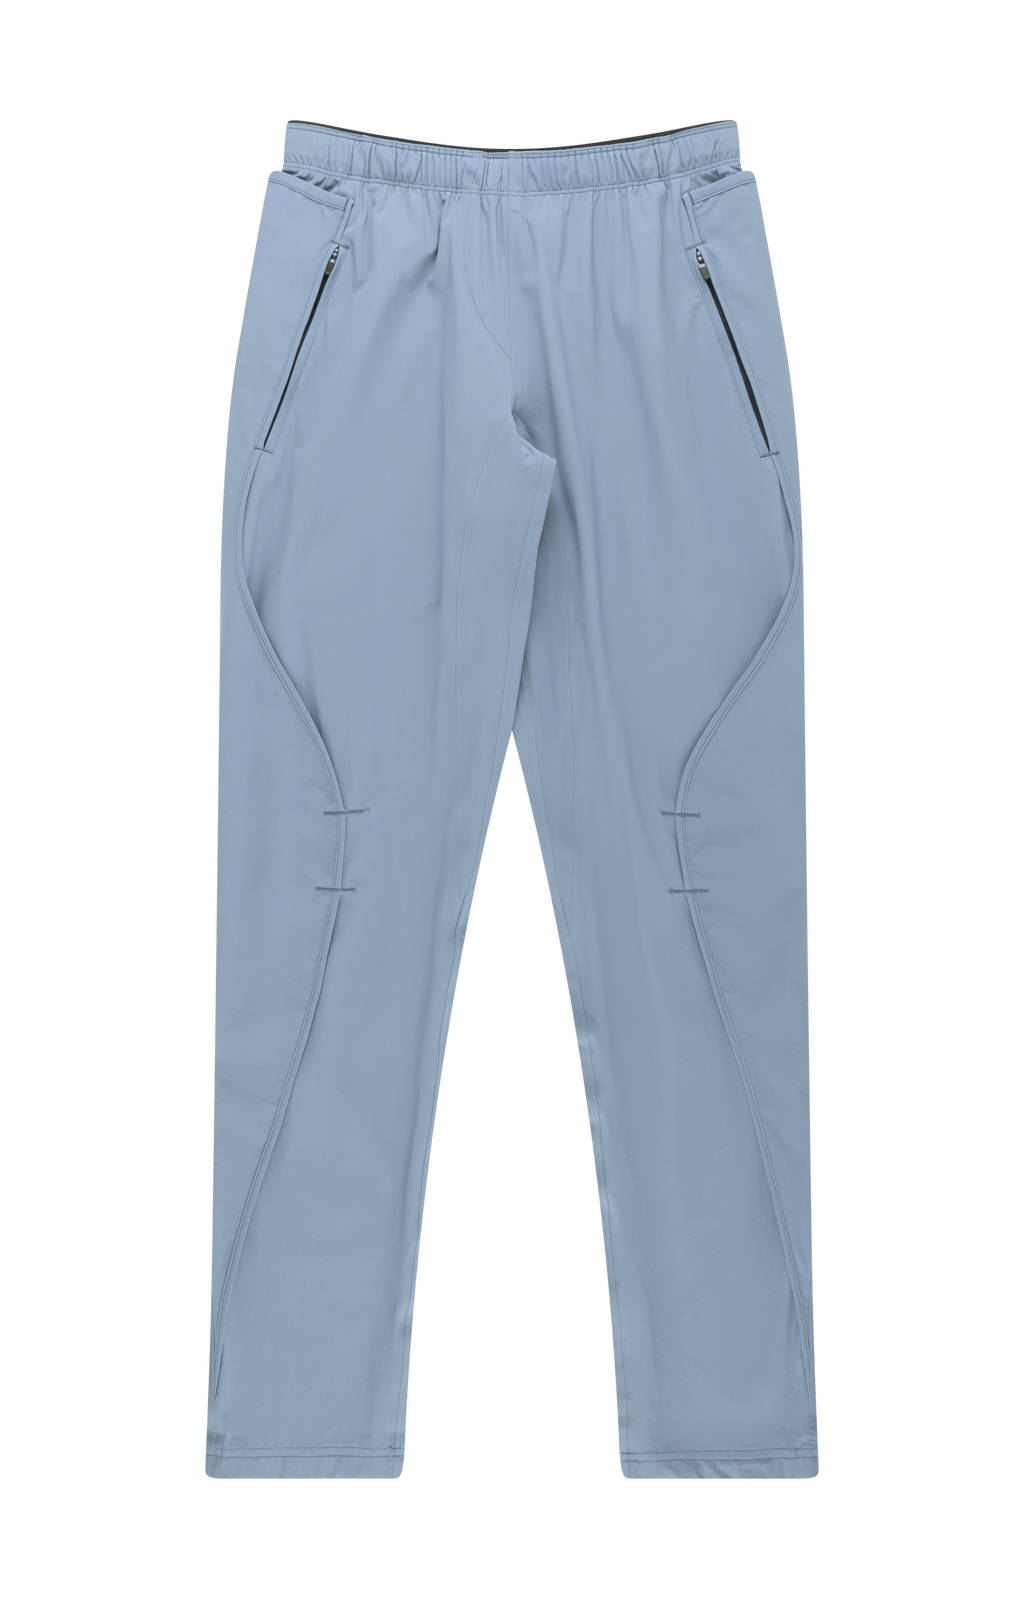 PURITY - METICULOUS CRAFTSMANSHIP, A BEAUTIFUL TRAVEL PANT DUST BLUE